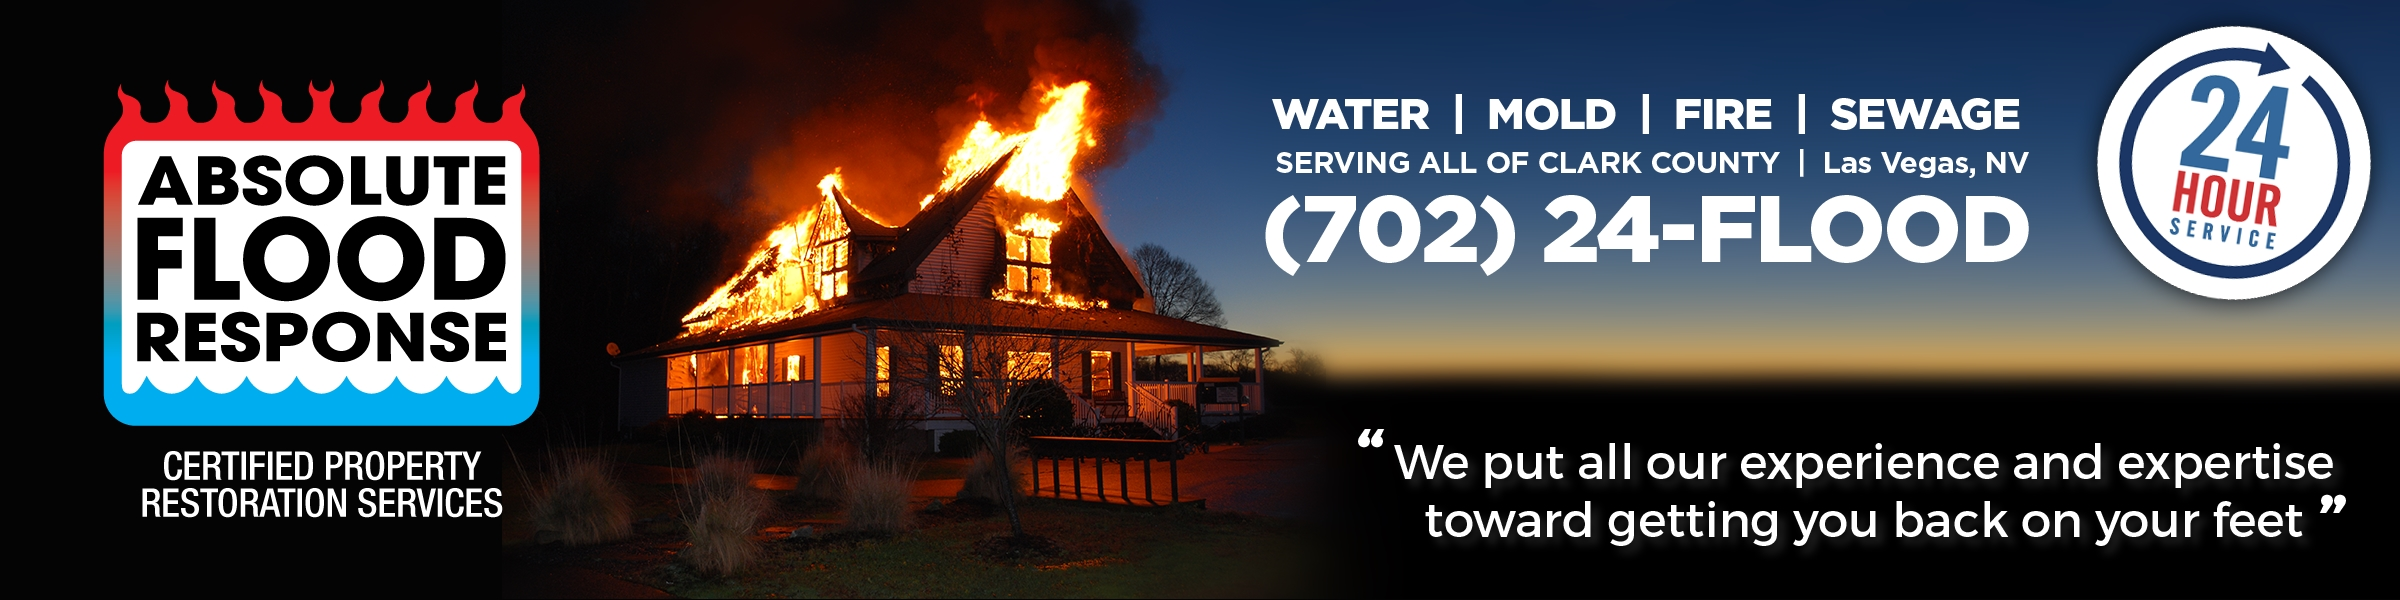 Absolute Flood Response water, mold, fire & sewage restoration and remitigation.